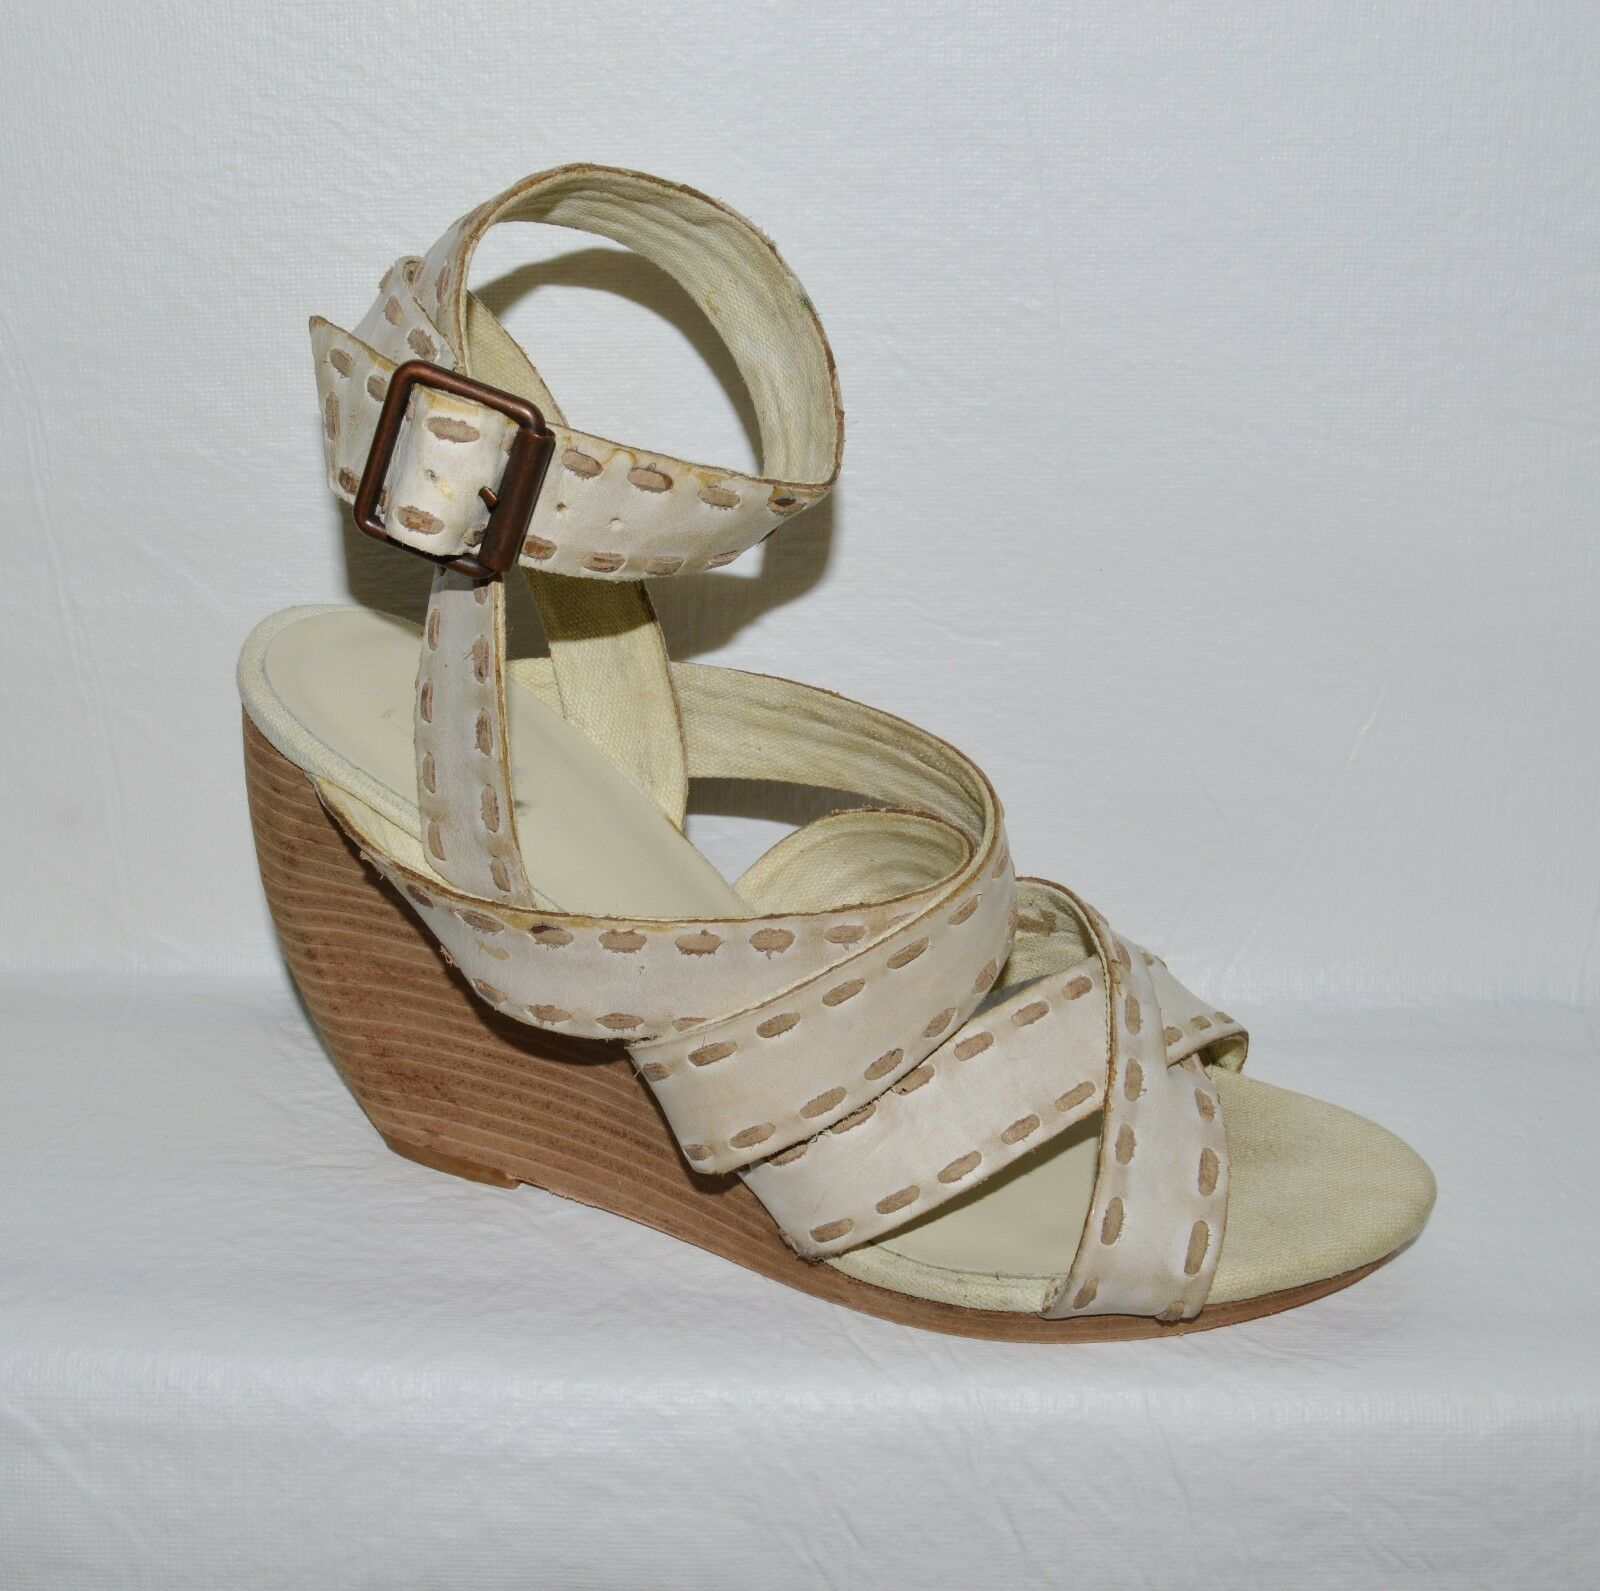 JOE'S SIZE 9 M STONE CREME SHADE LEATHER SANDALS WRAP AROUND ANKLE PLATFORM SANDALS LEATHER 3648d4